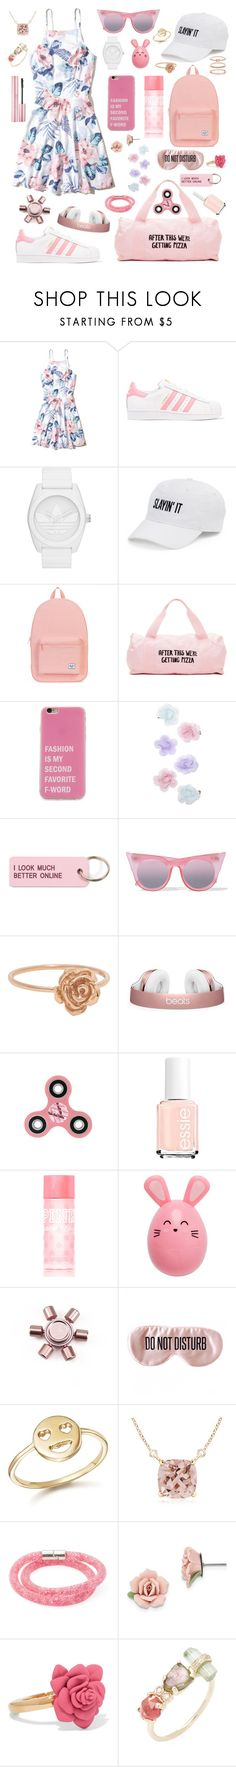 """""""Cute"""" by jojogena ❤ liked on Polyvore featuring beauty, Hollister Co., adidas Originals, SO, Herschel, ban.do, Monsoon, Various Projects, Le Specs and Victoria's Secret PINK"""